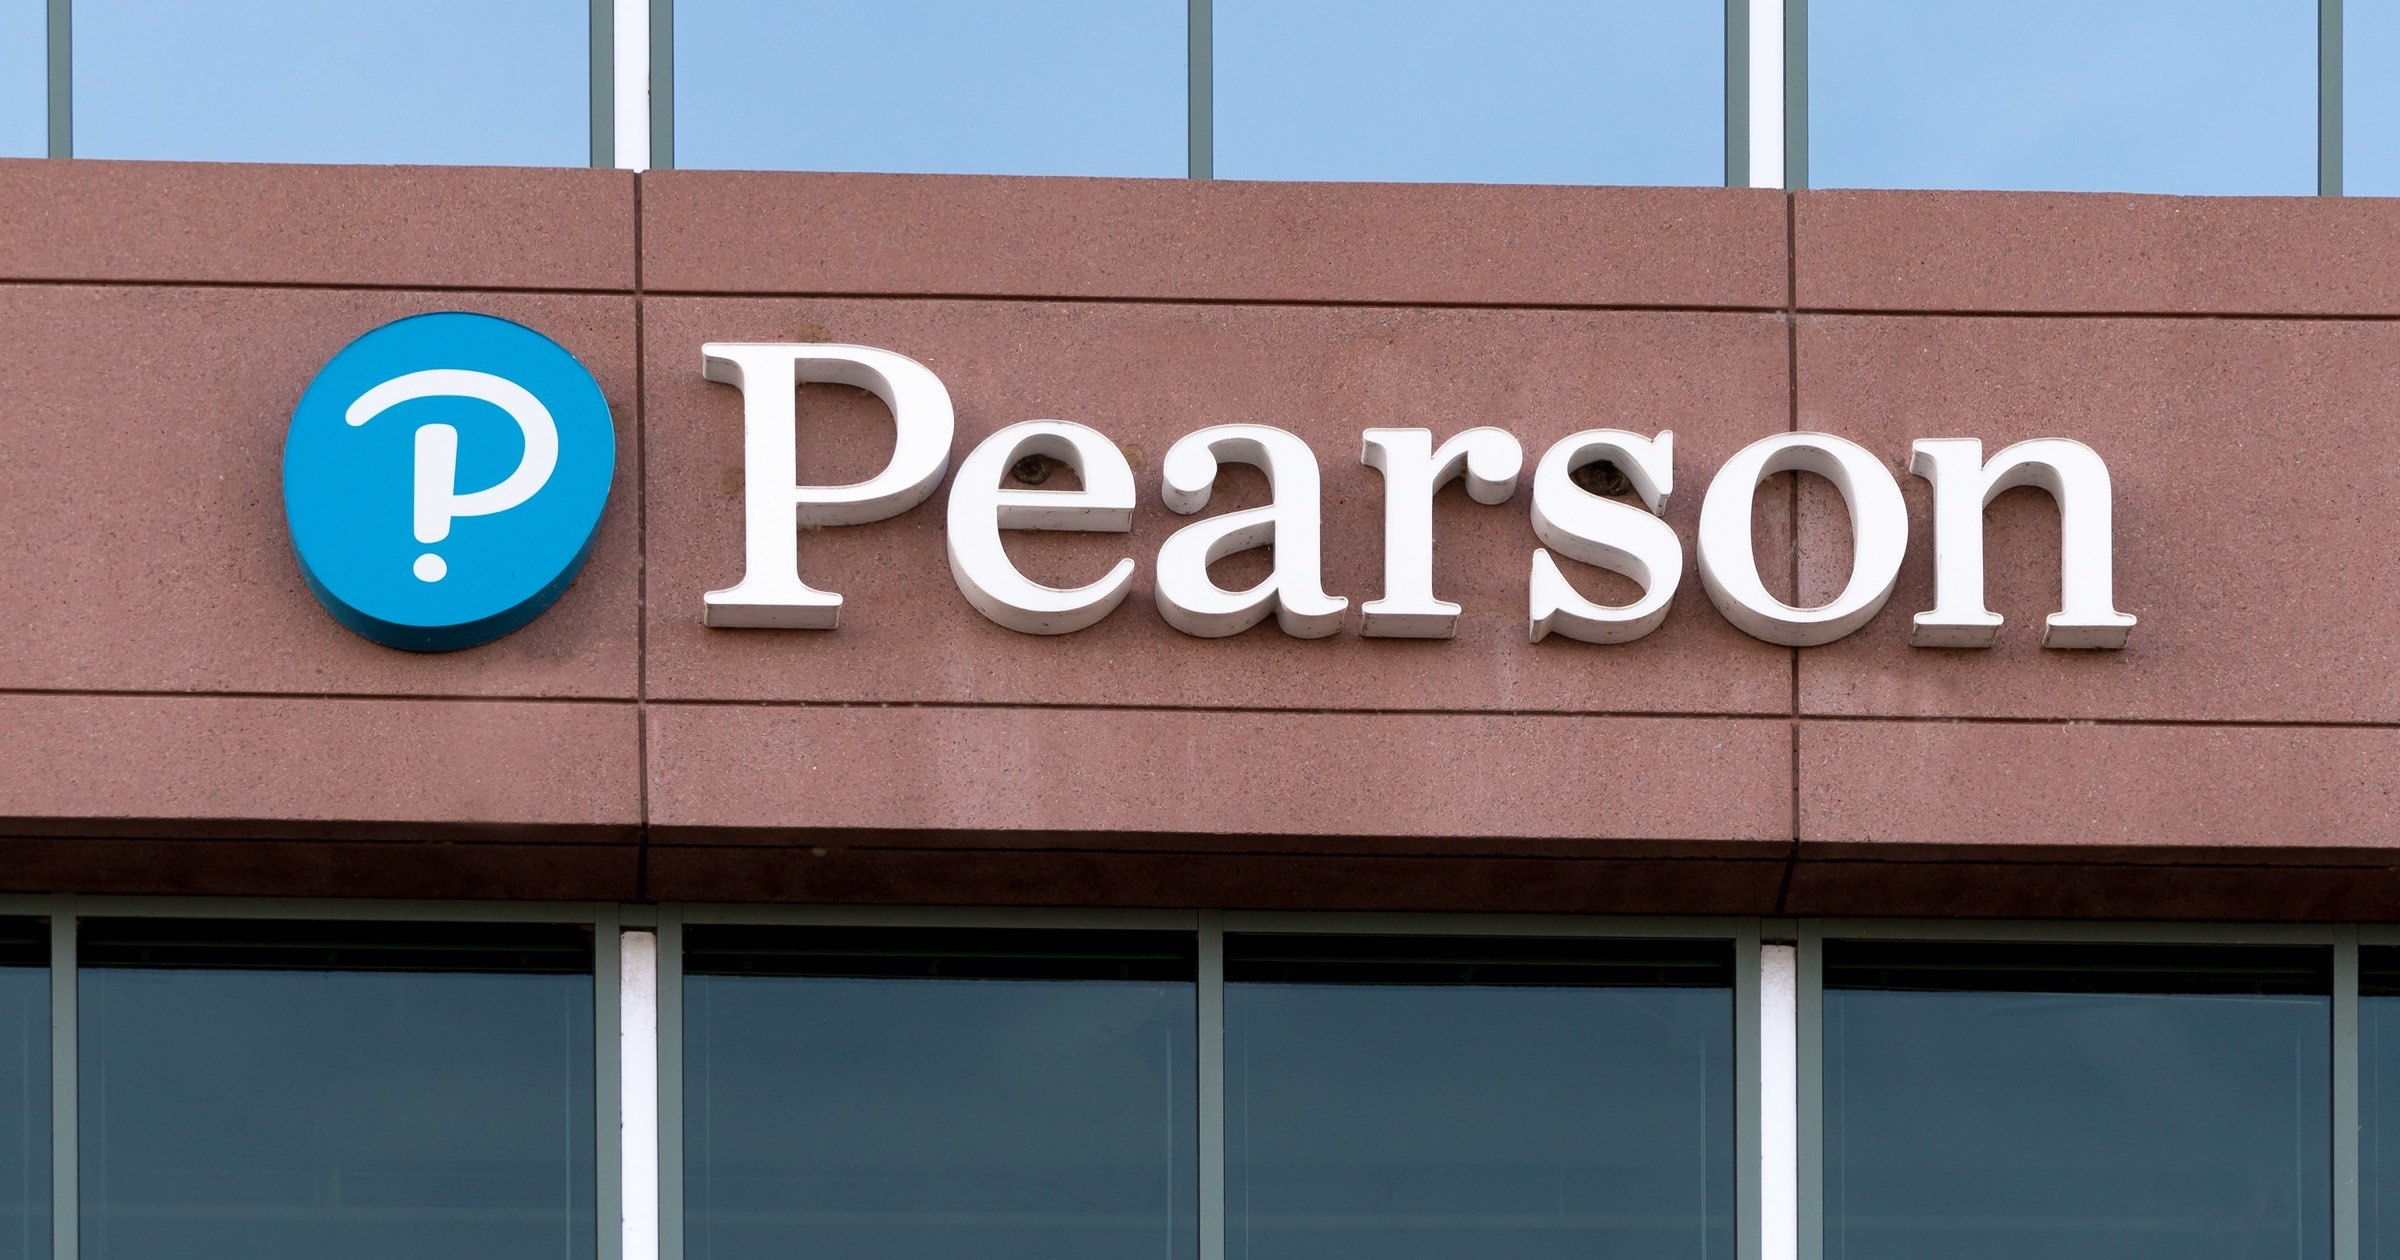 Pearson office building and logo